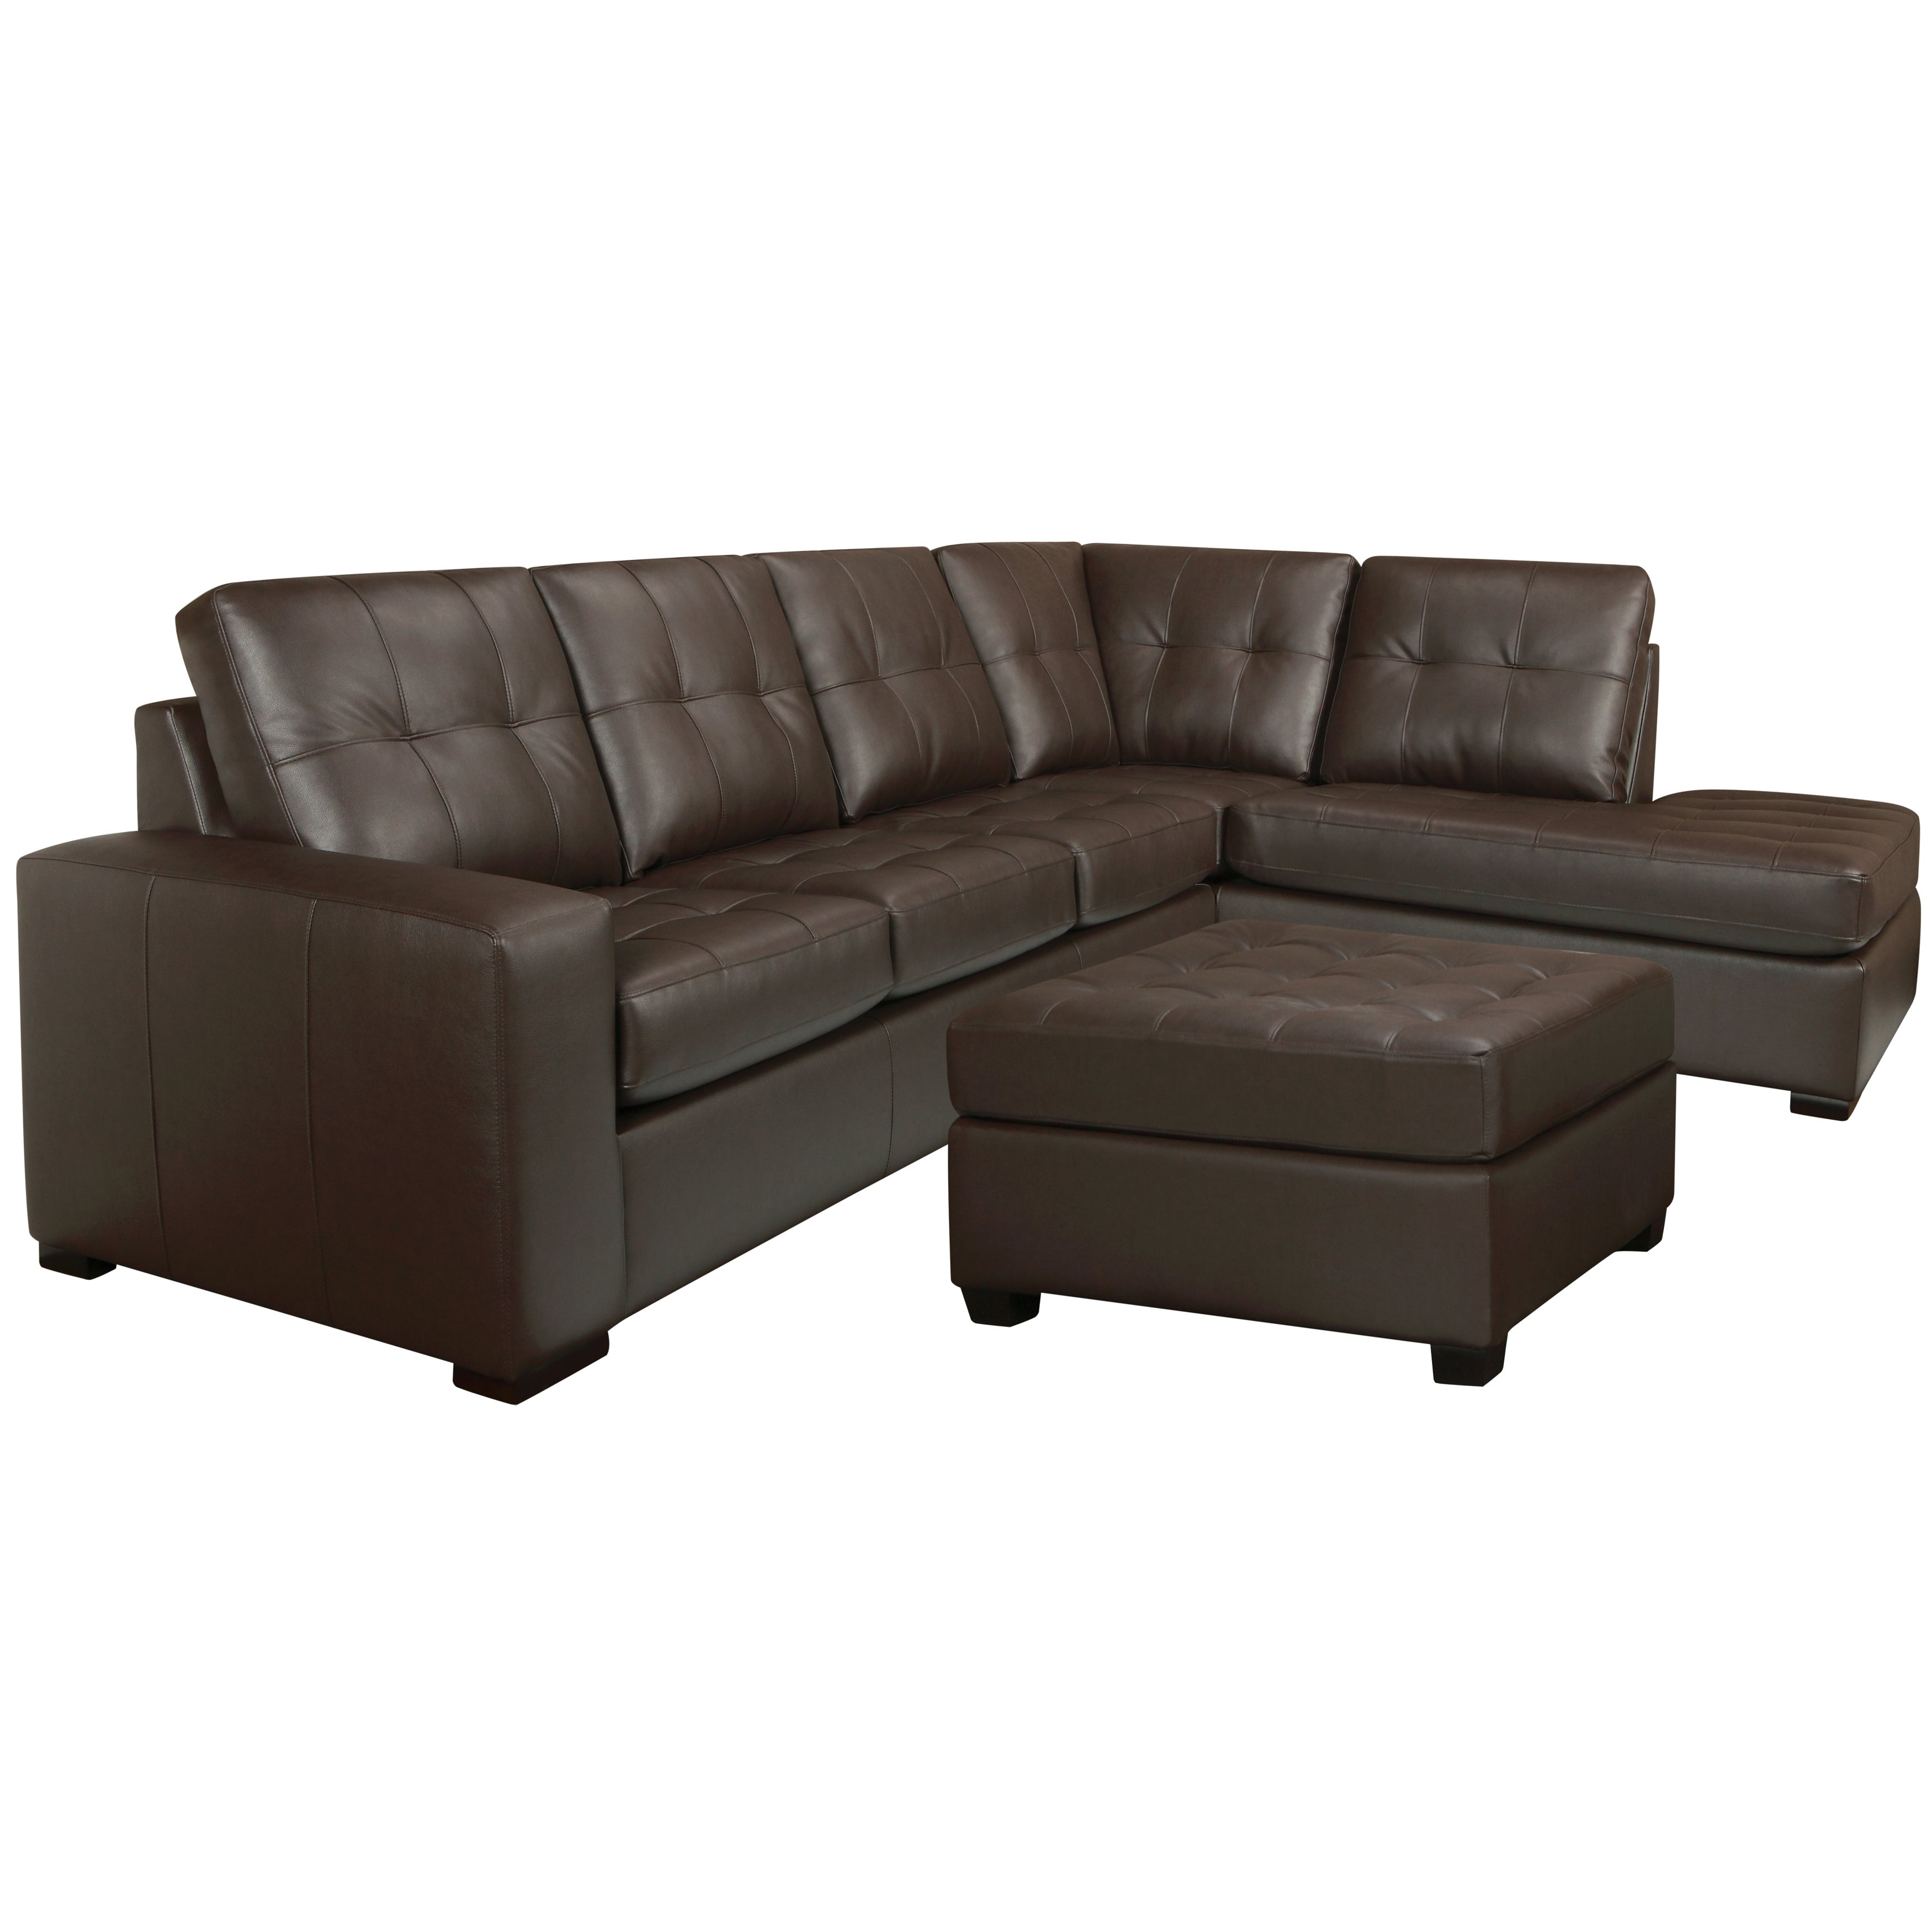 Drake Chocolate Brown Italian Leather Sectional Sofa And Ottoman On Free Shipping Today 7516902